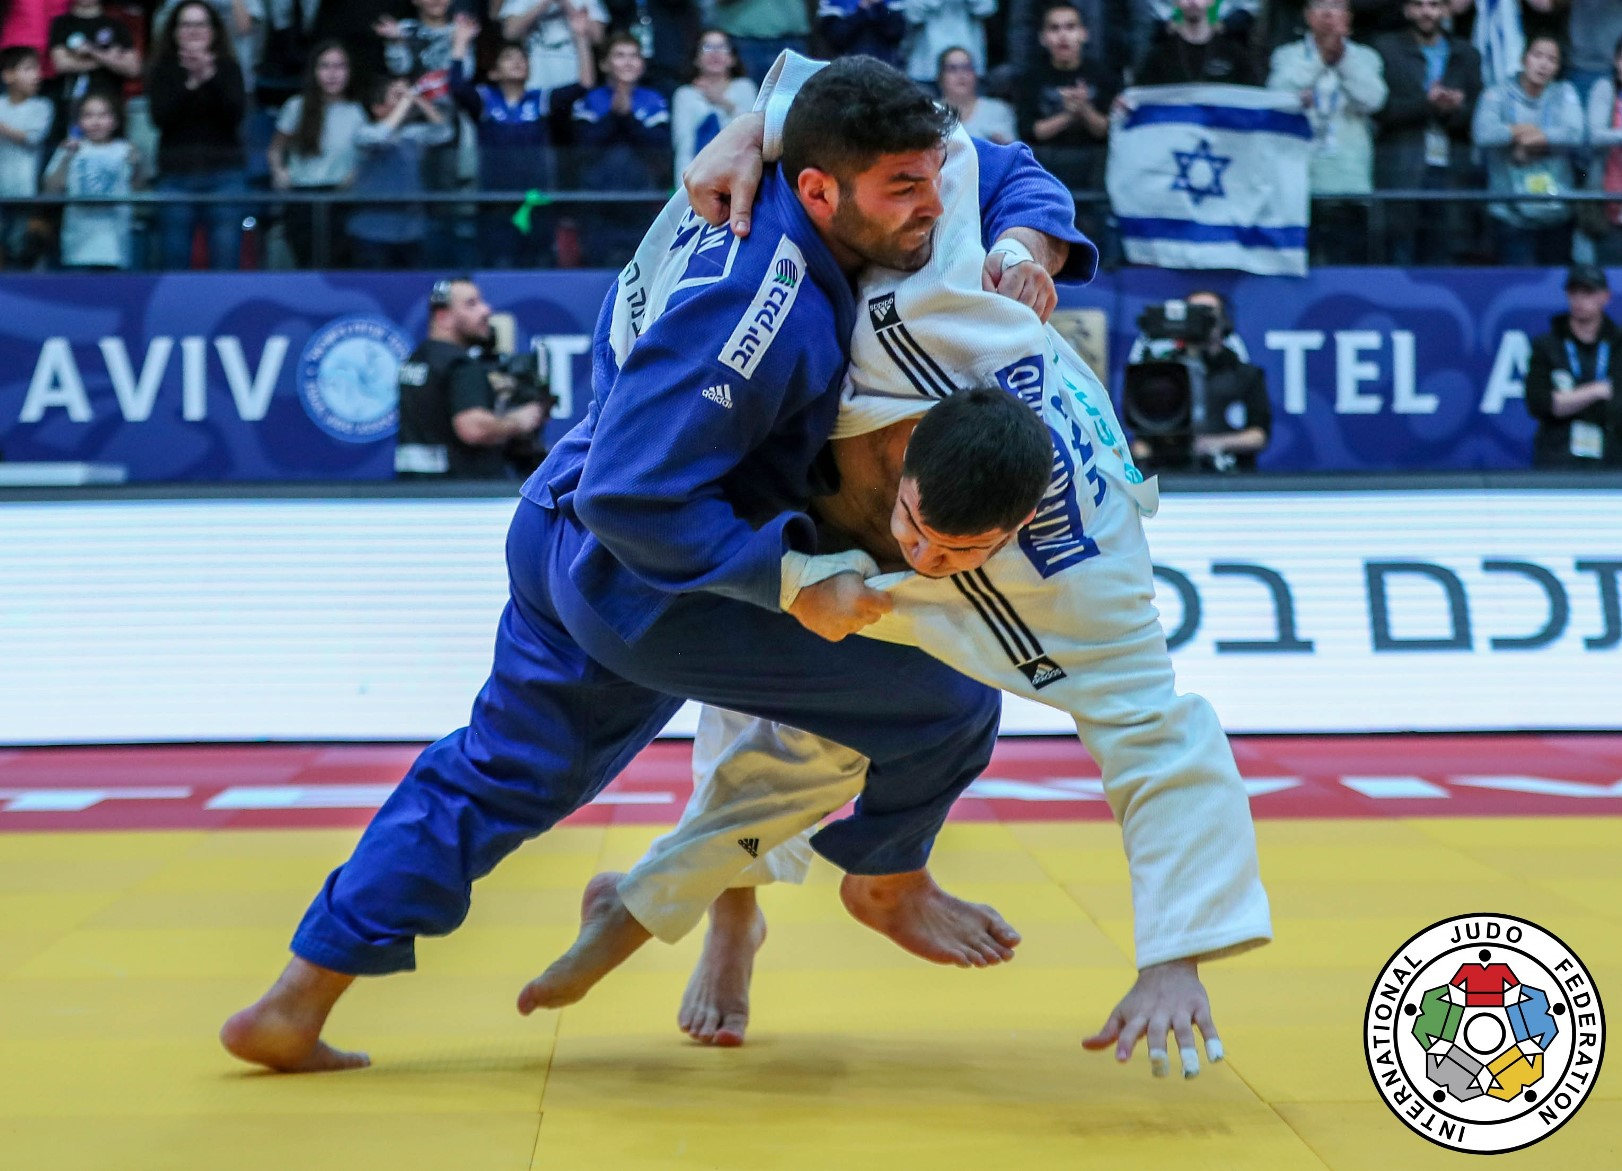 Israel hosts, and wins, international judo grand prix